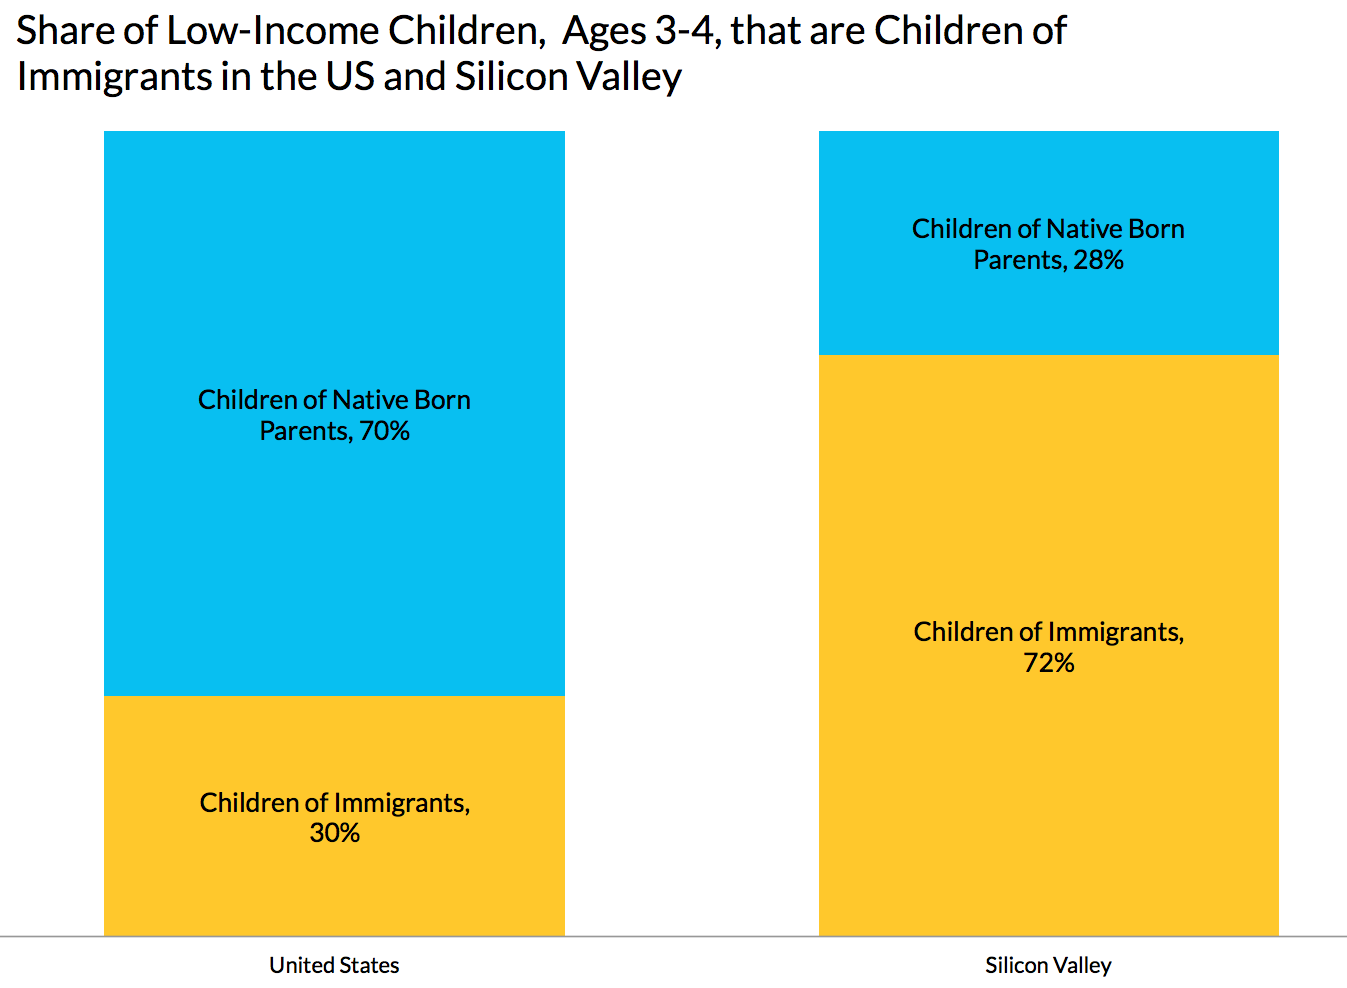 Share of Low-Income Children, Ages 3-4, that are Children of Immigrants in the U.S. and Silicon Valley